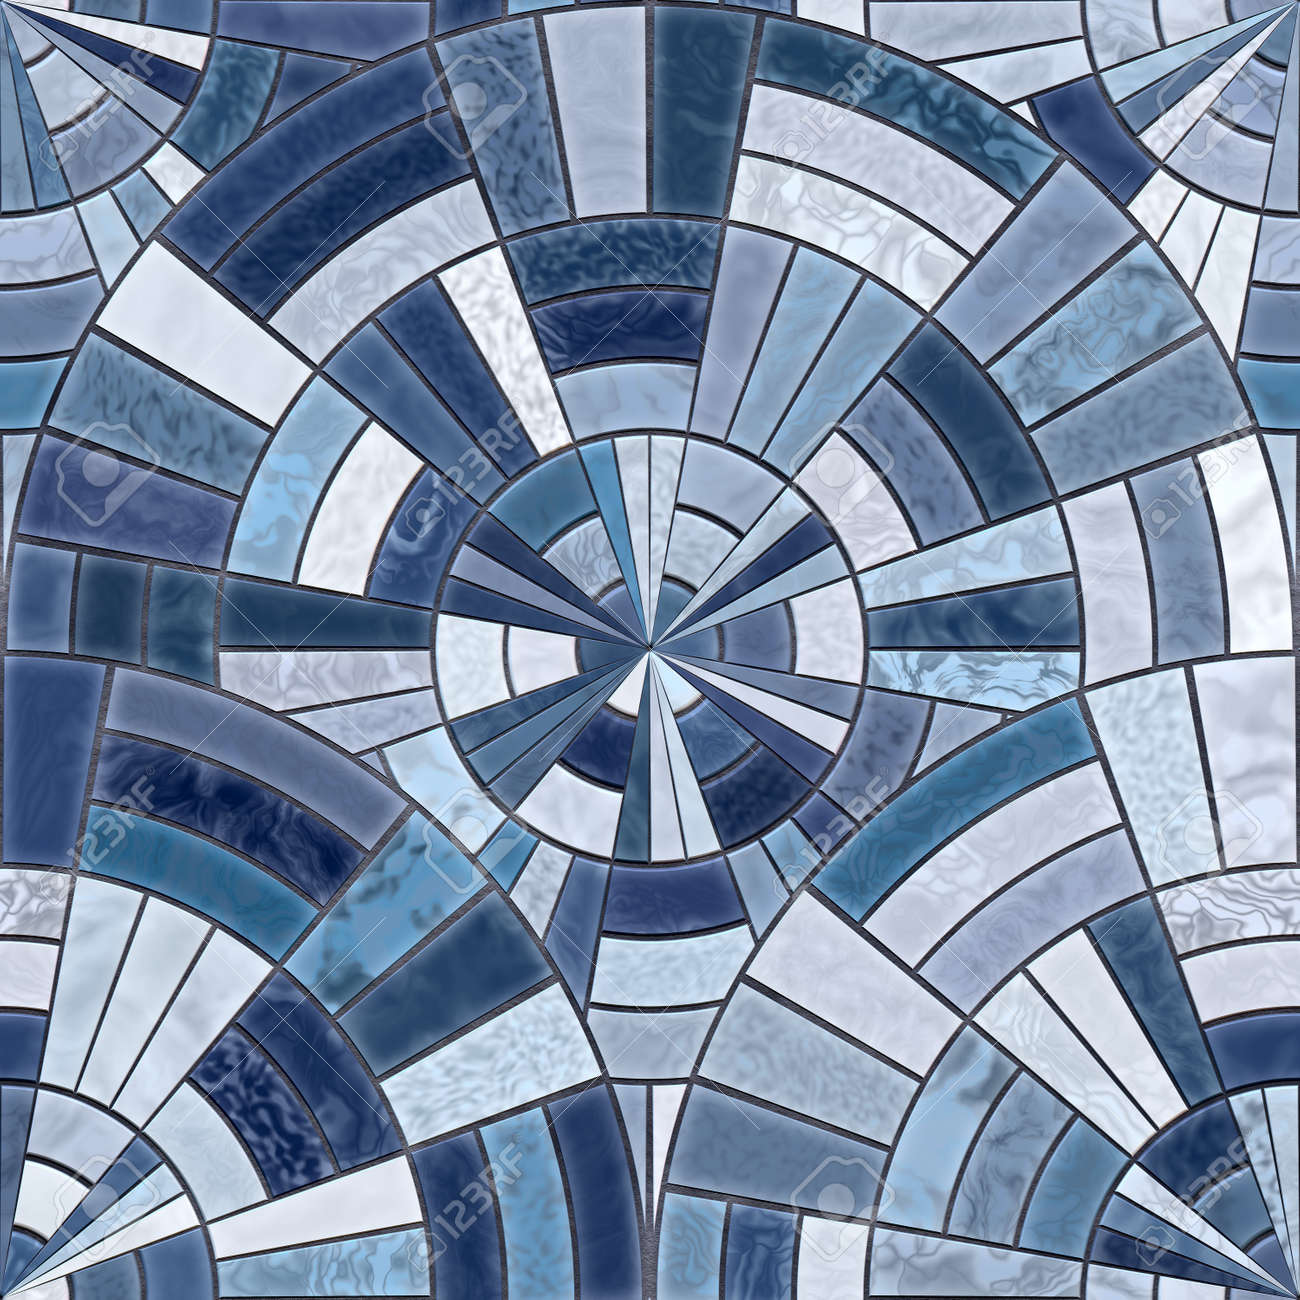 radial mosaic tiles seamless textures stock photo picture and